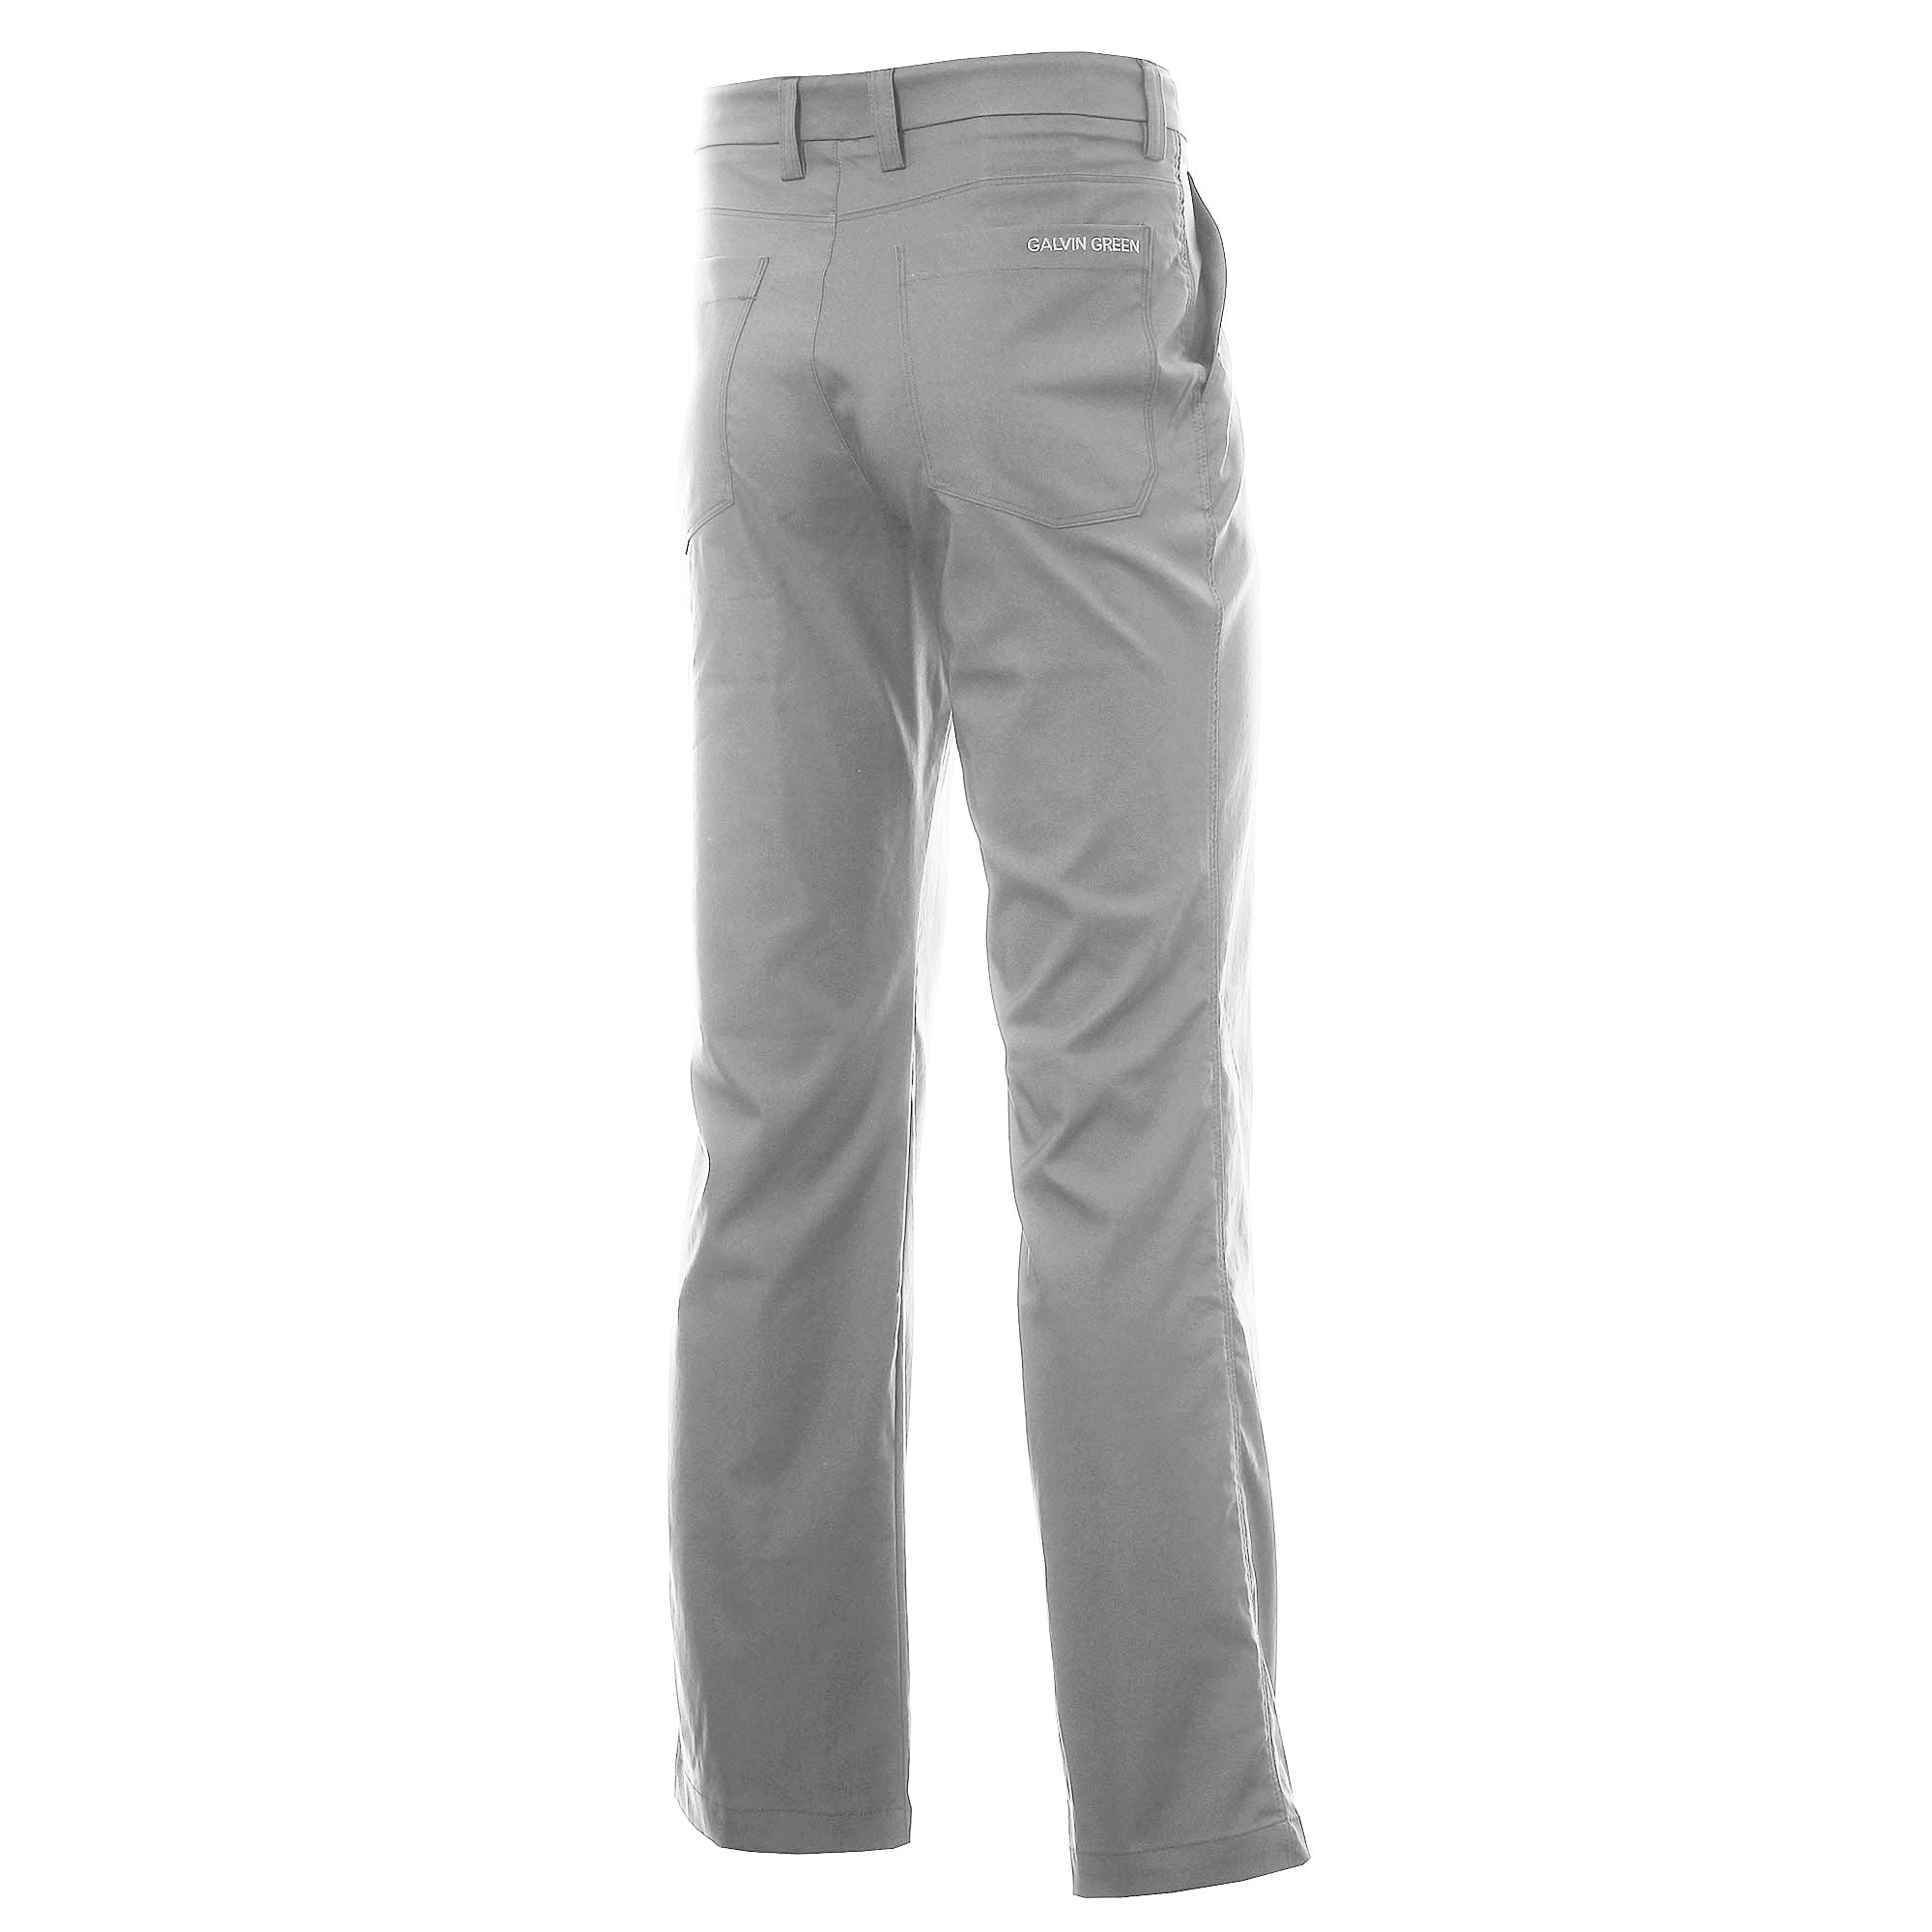 Galvin Green Nash Ventil8+ Golf Trousers